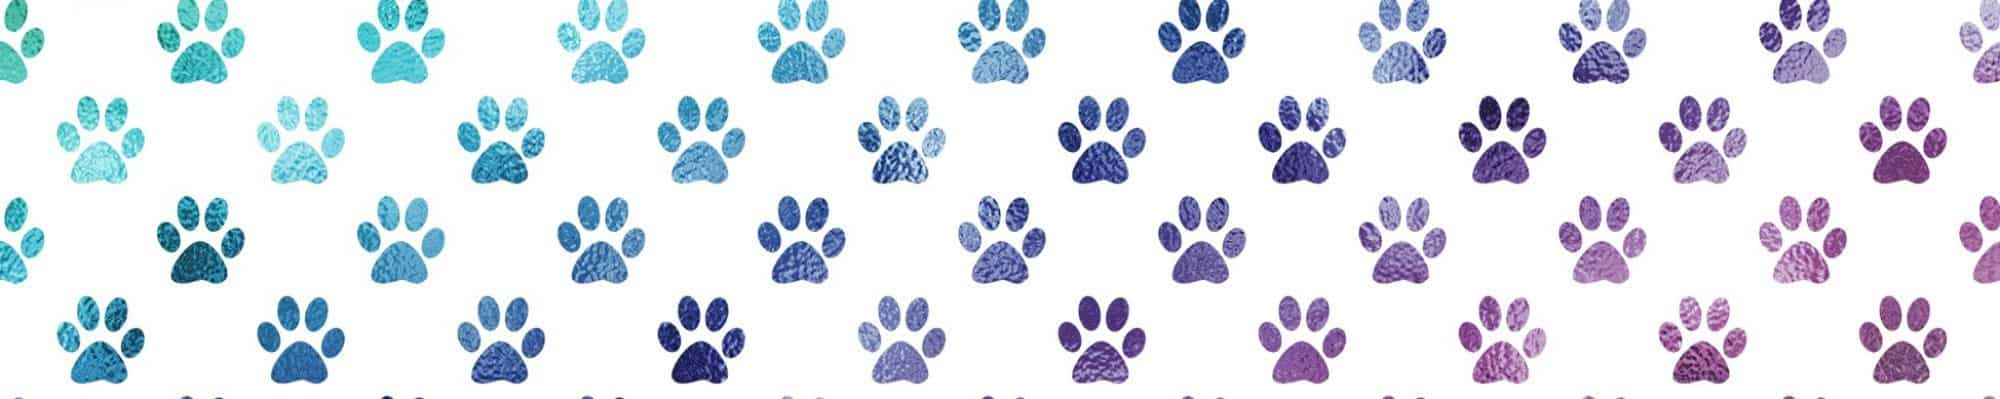 Four Paws Web Design